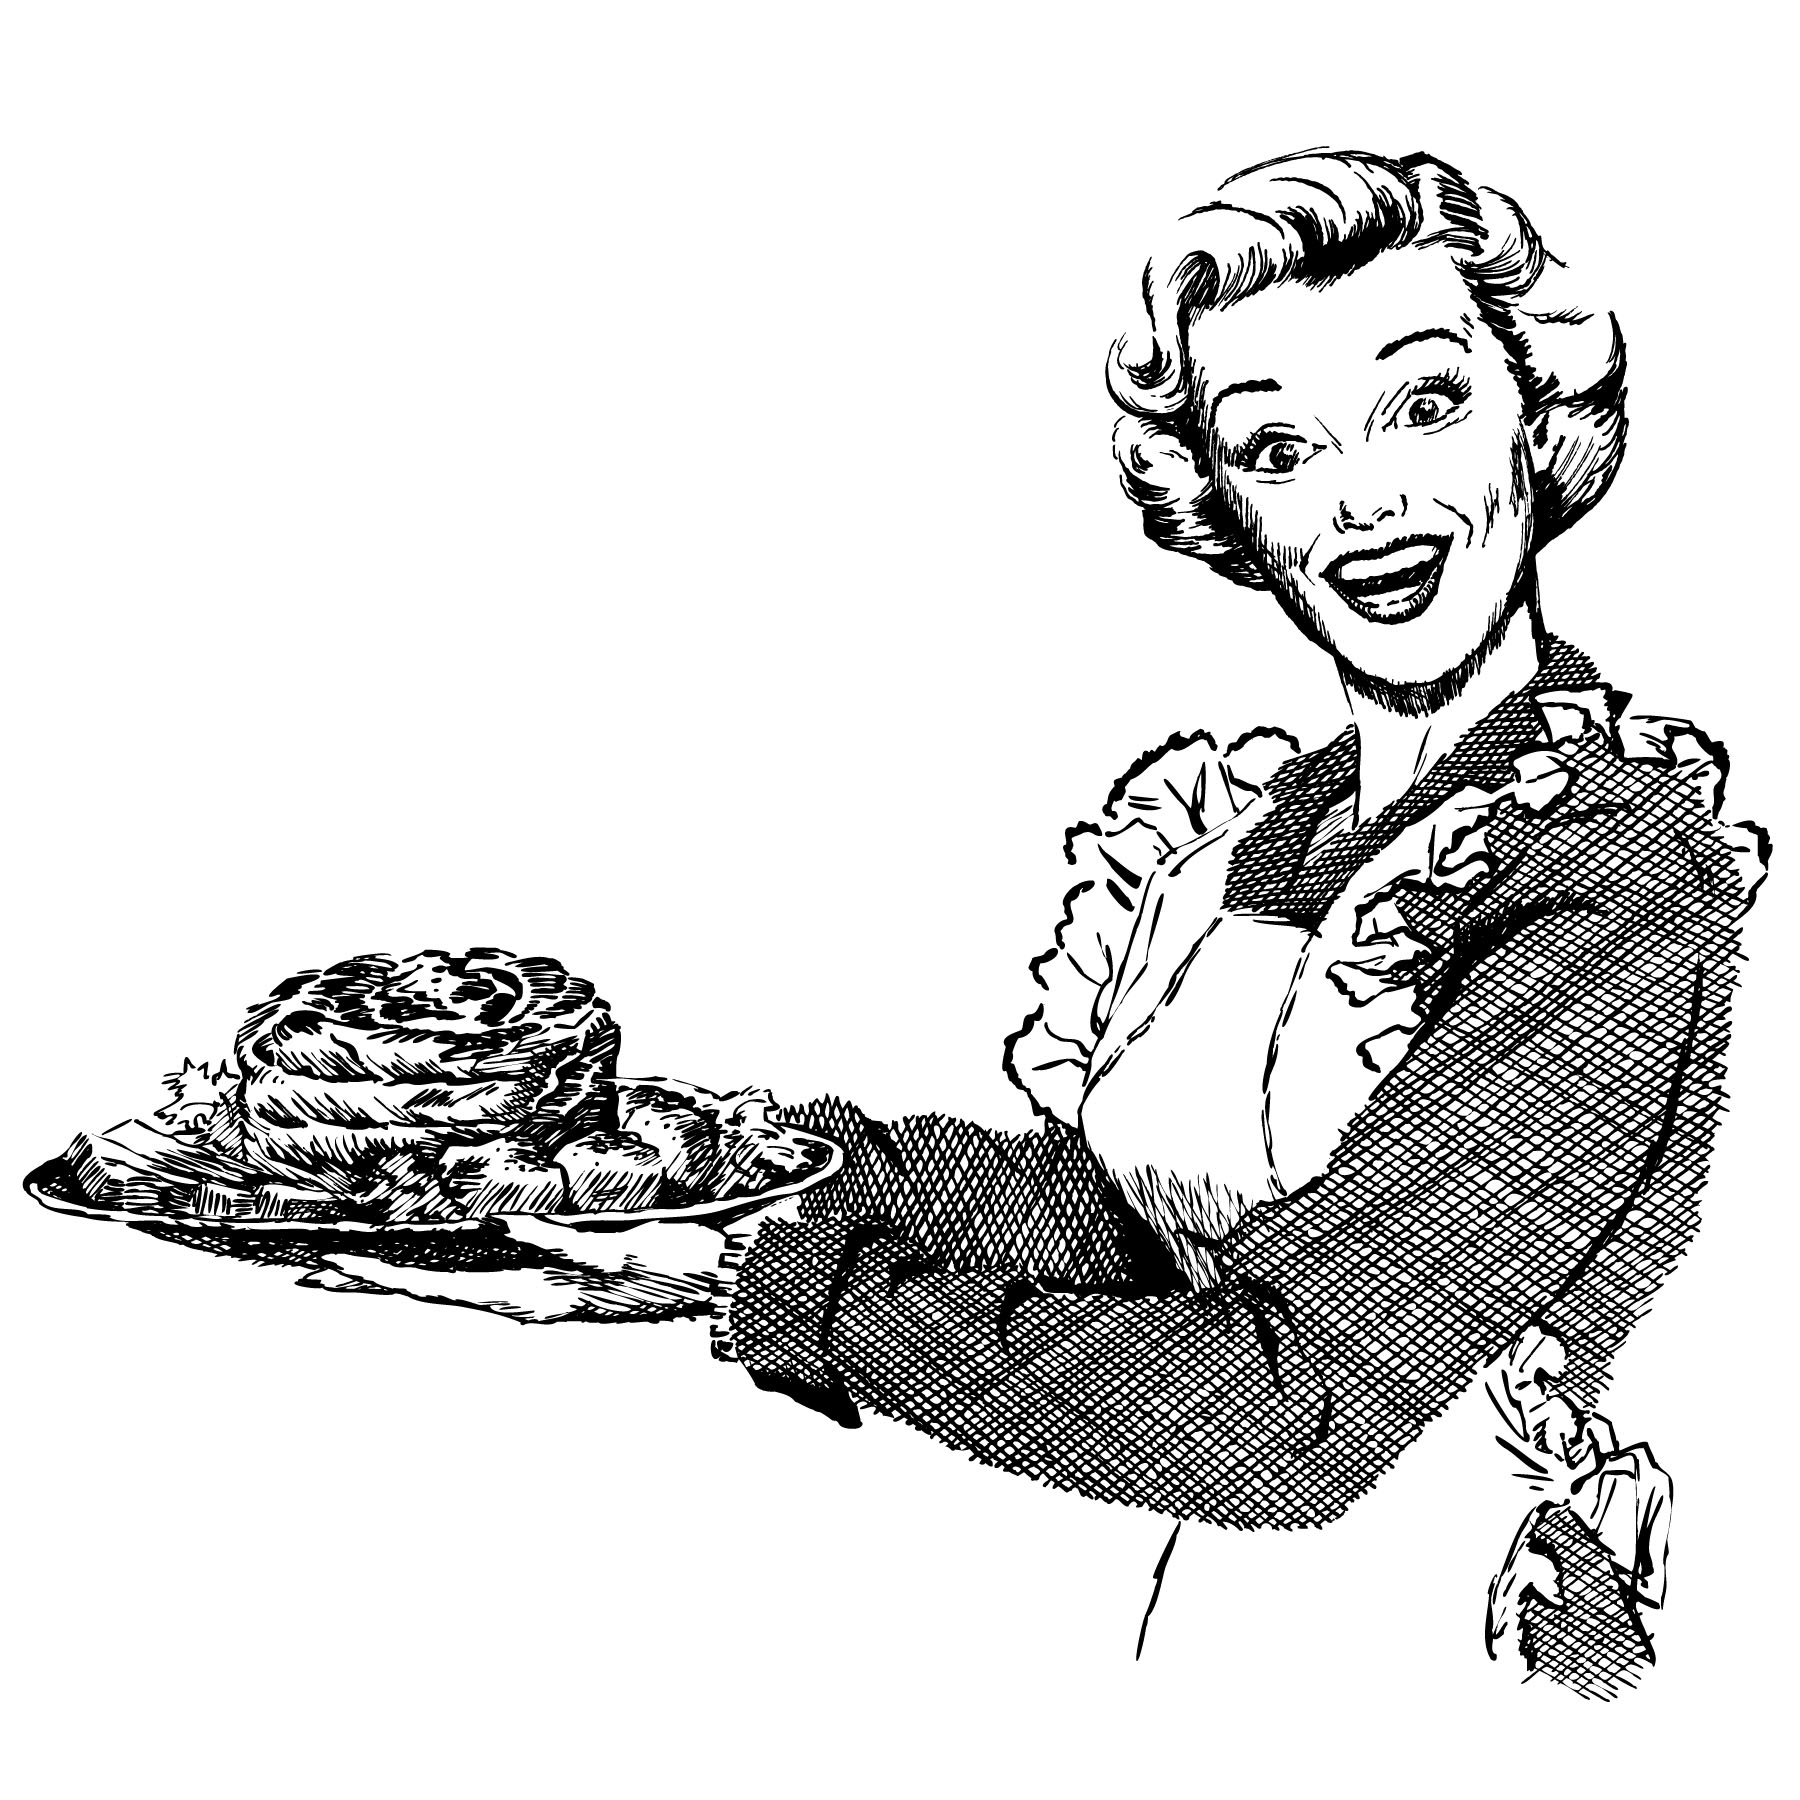 smiling woman in apron holding a tray of food